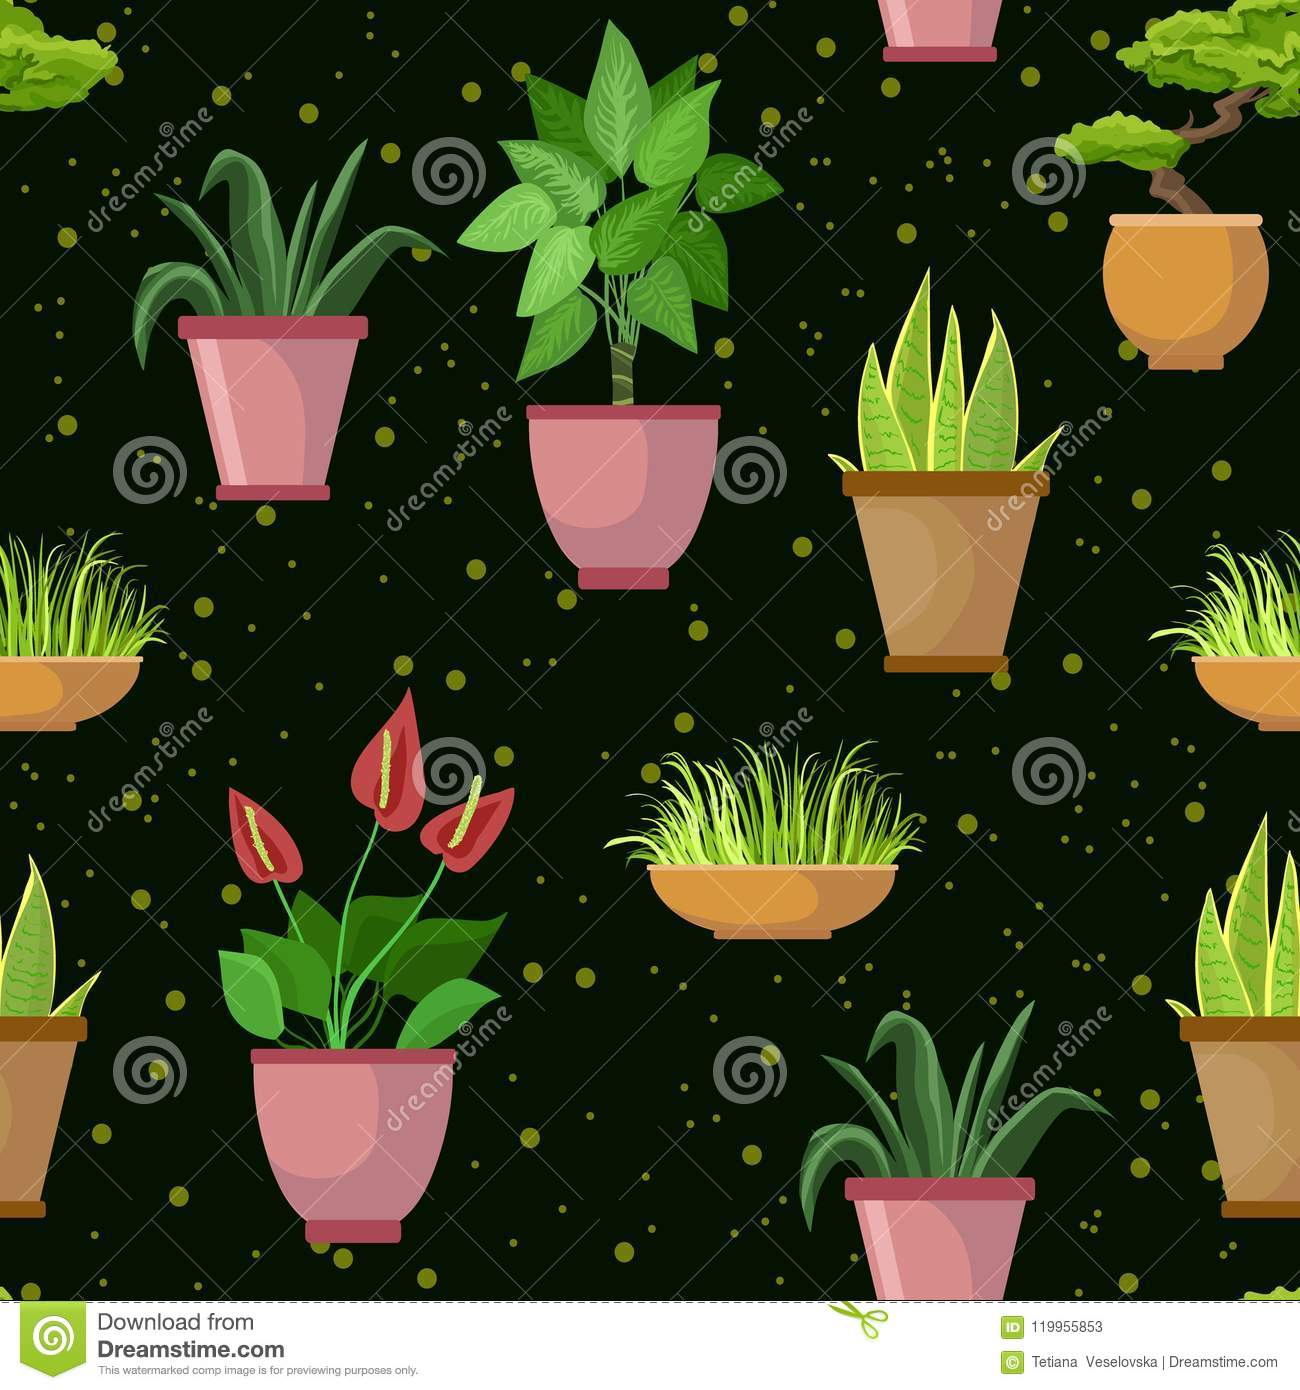 Vector seamless pattern with flower pots and houseplants decorative vector seamless pattern with flower pots and houseplants decorative set dark background mightylinksfo